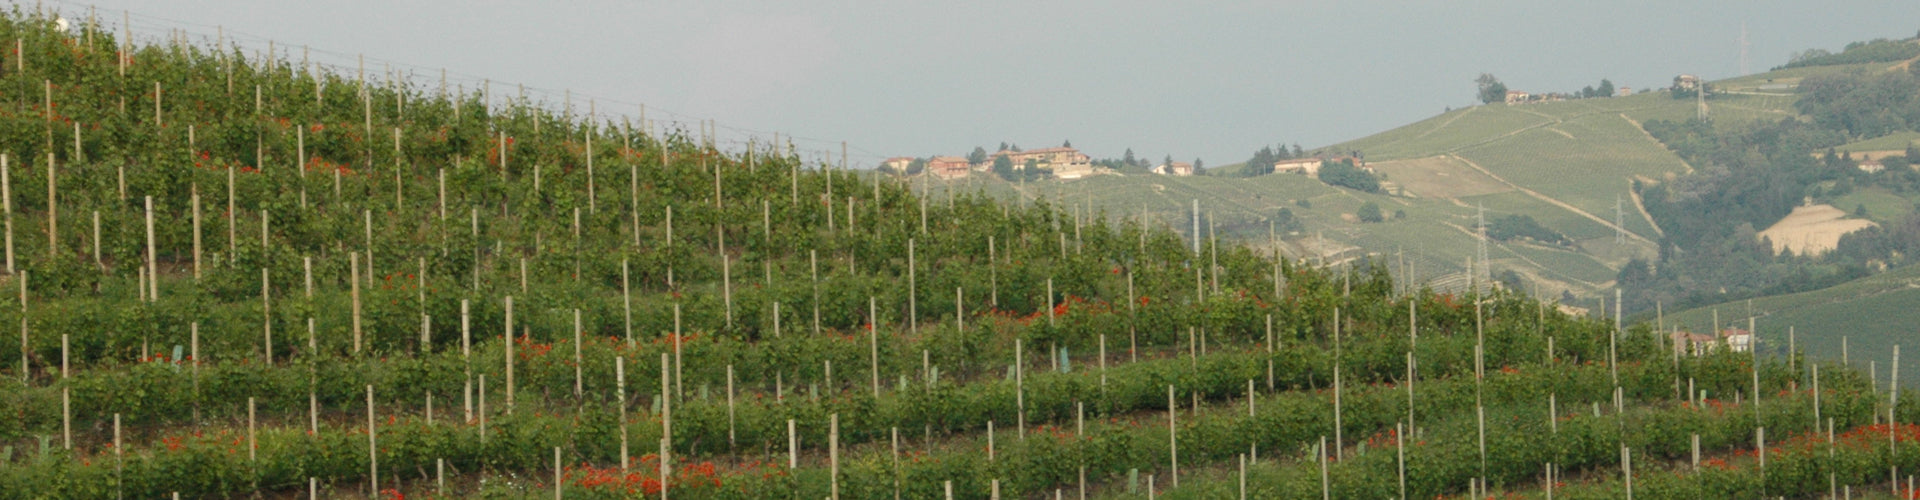 Castello di Neive Vineyards in Barbaresco, Piedmont in Italy